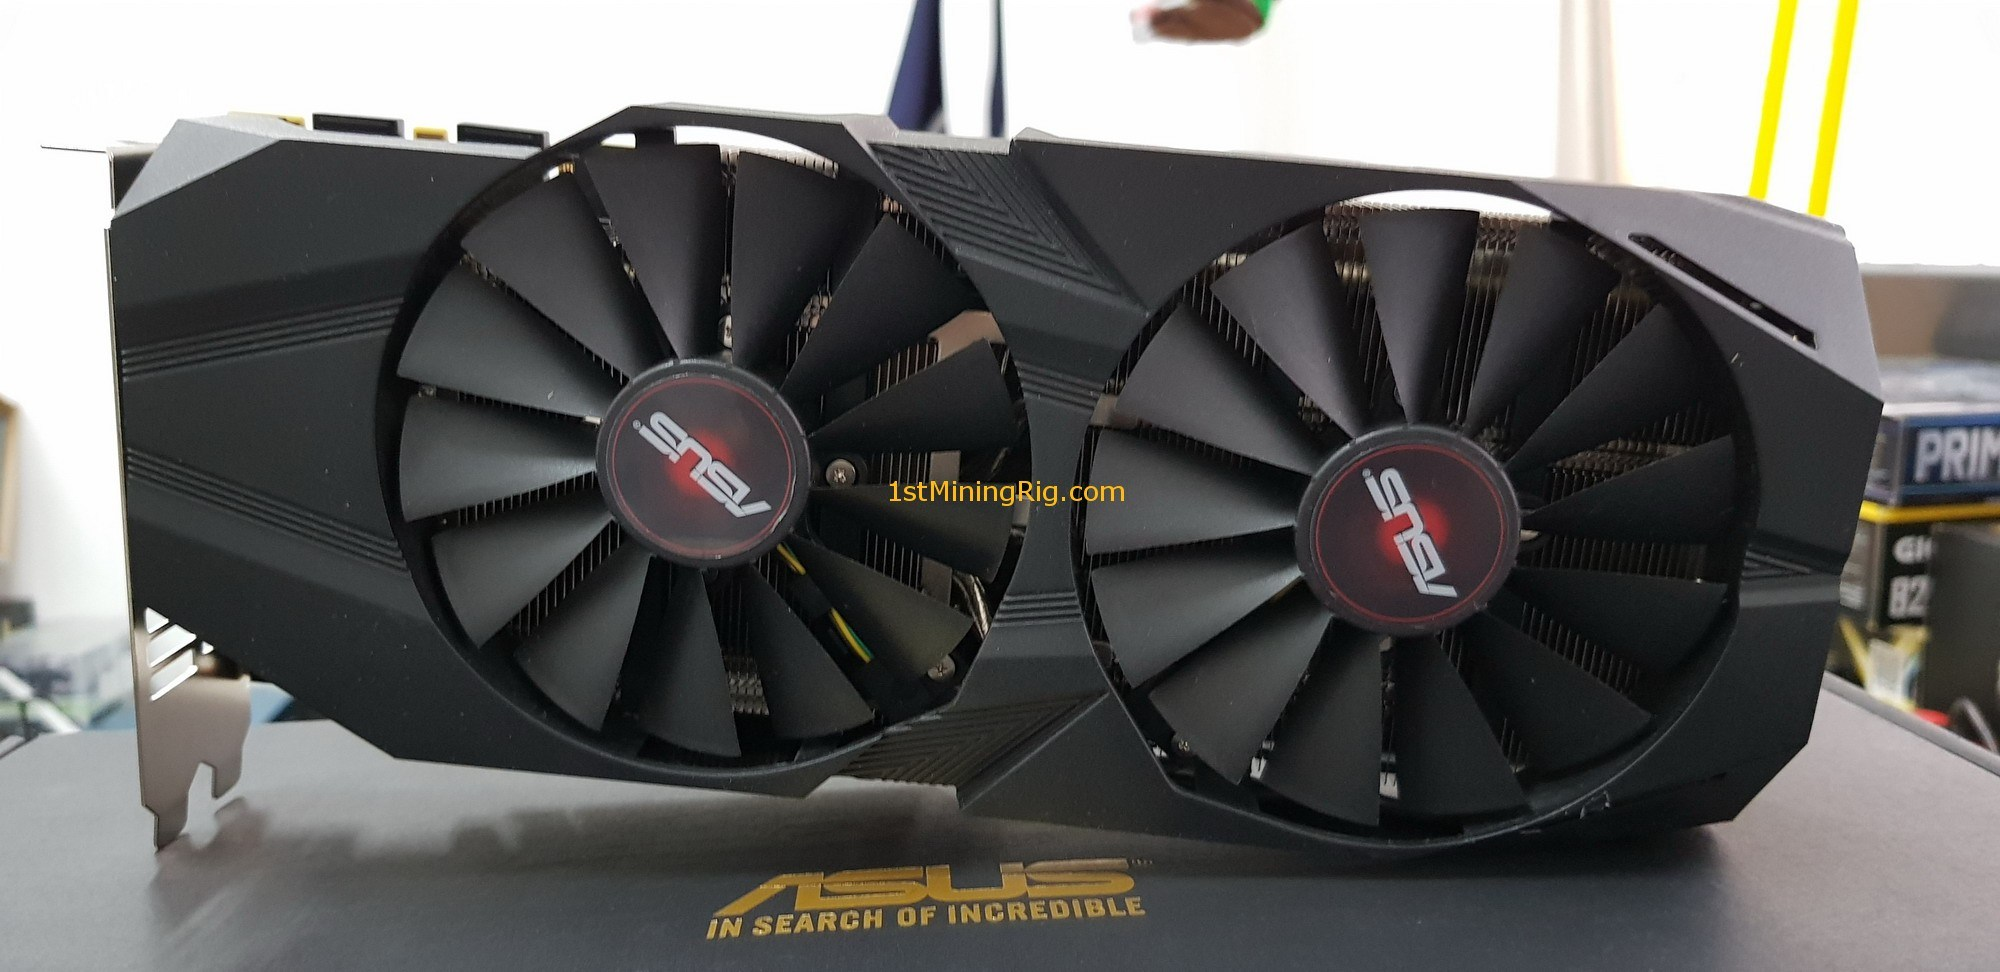 Asus-P104-100-4GB-Review-Fans